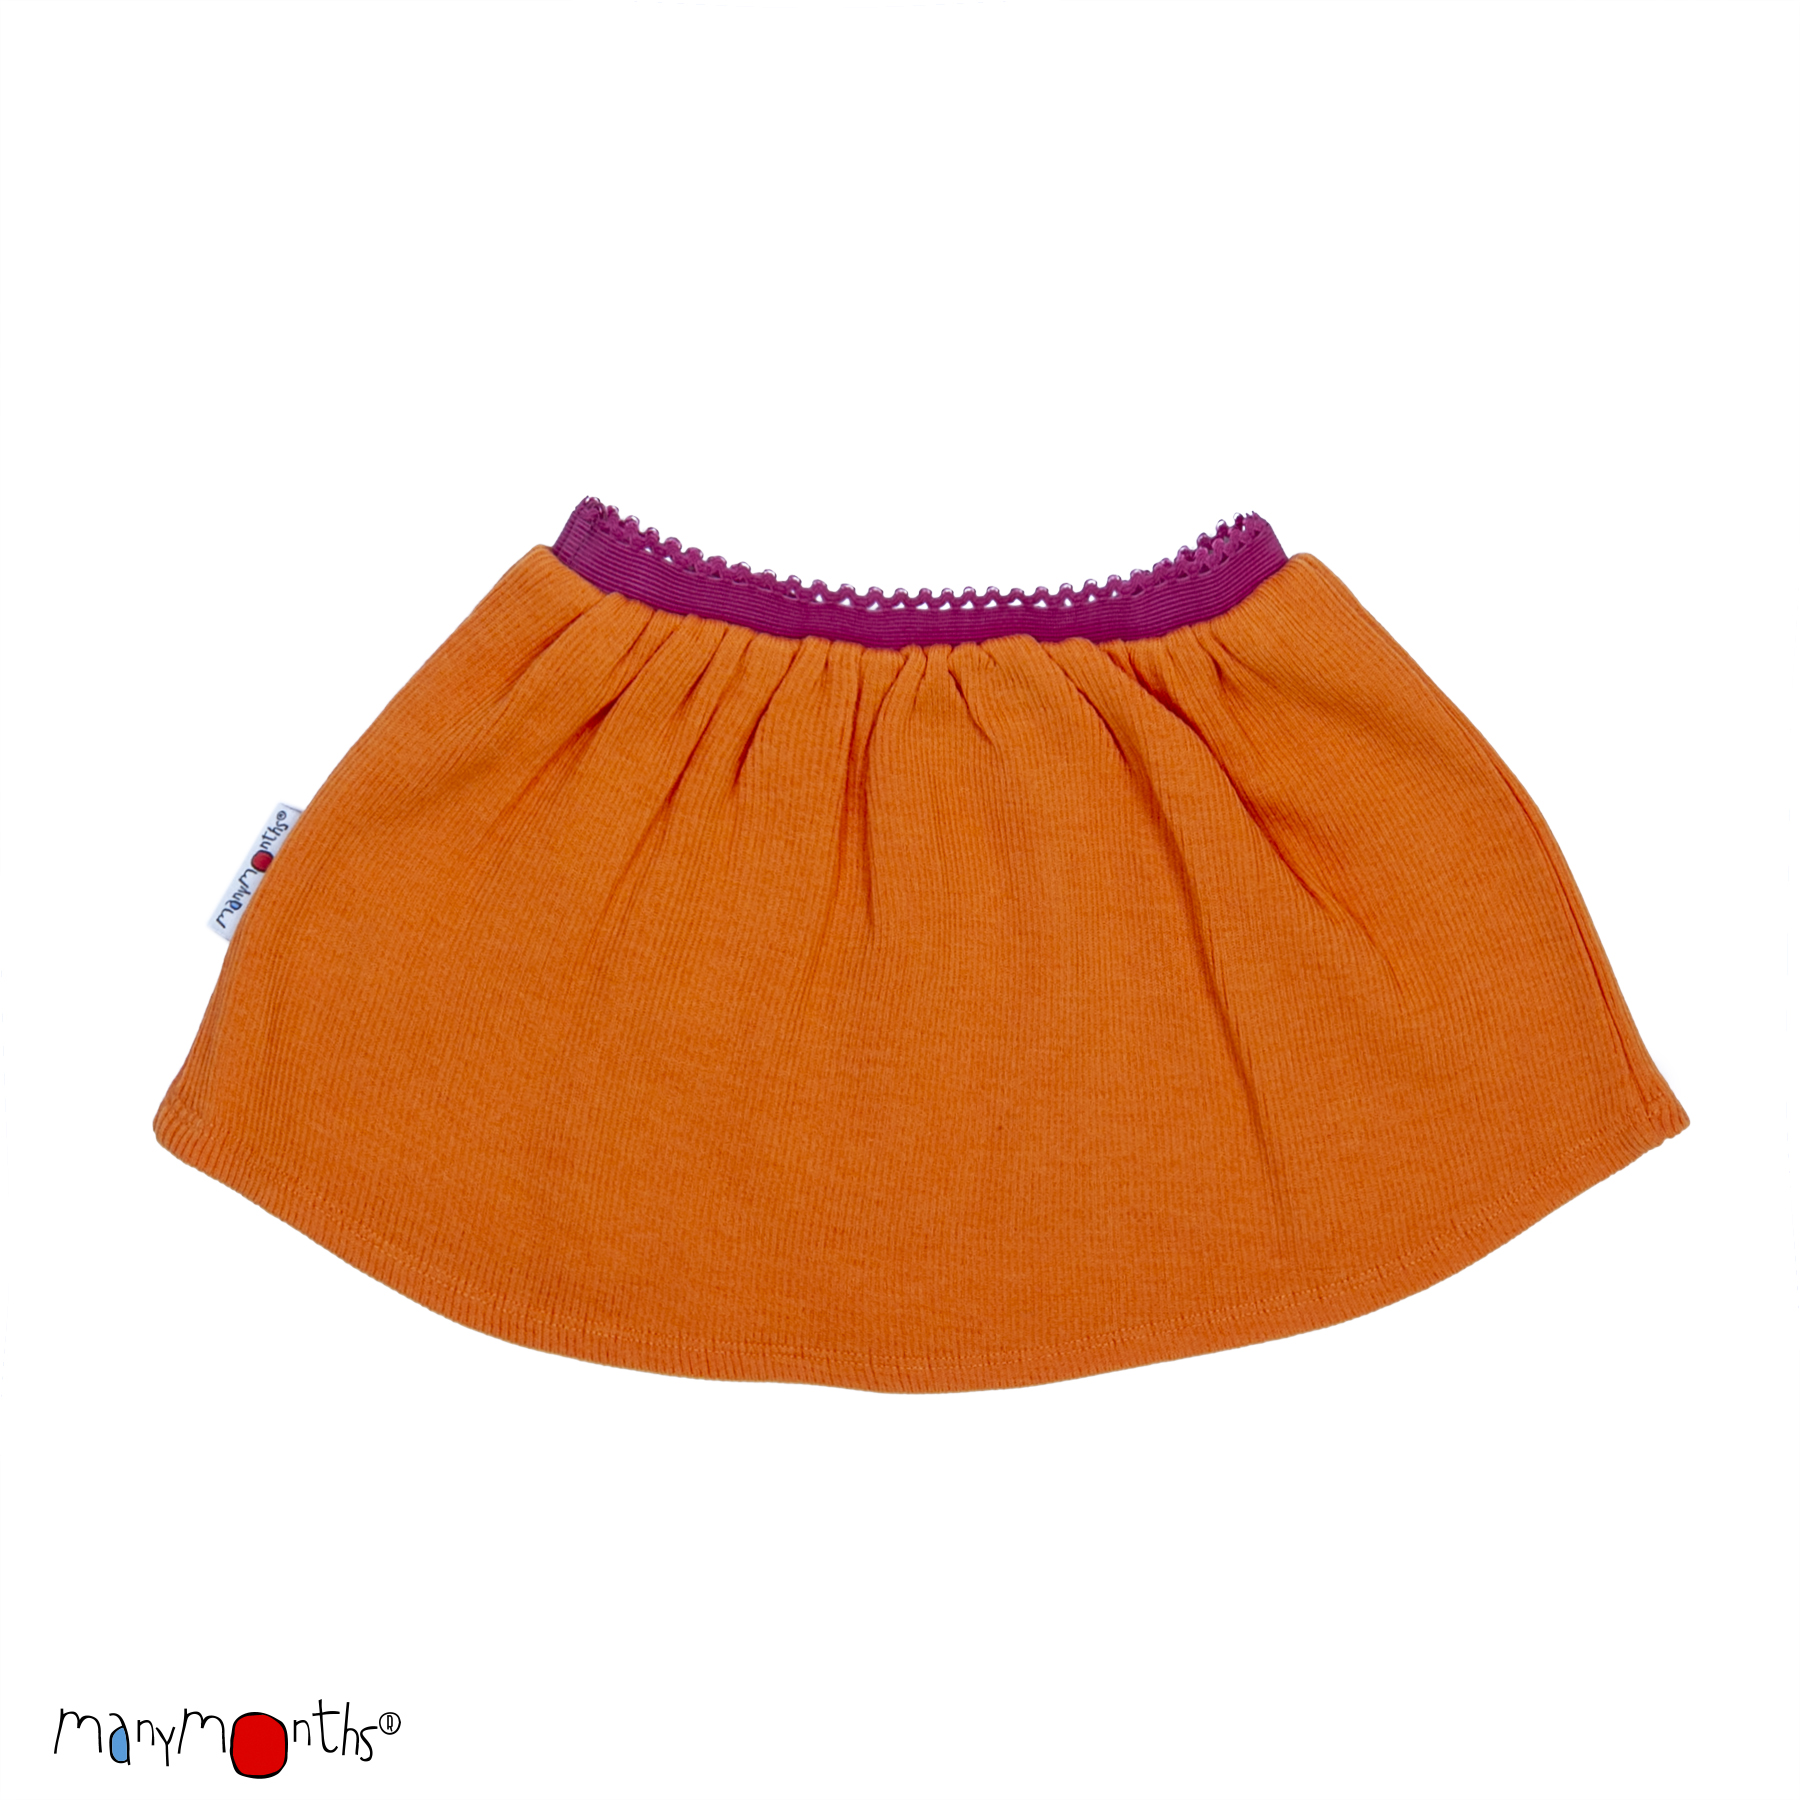 ManyMonths Natural Woollies Princess Skirt